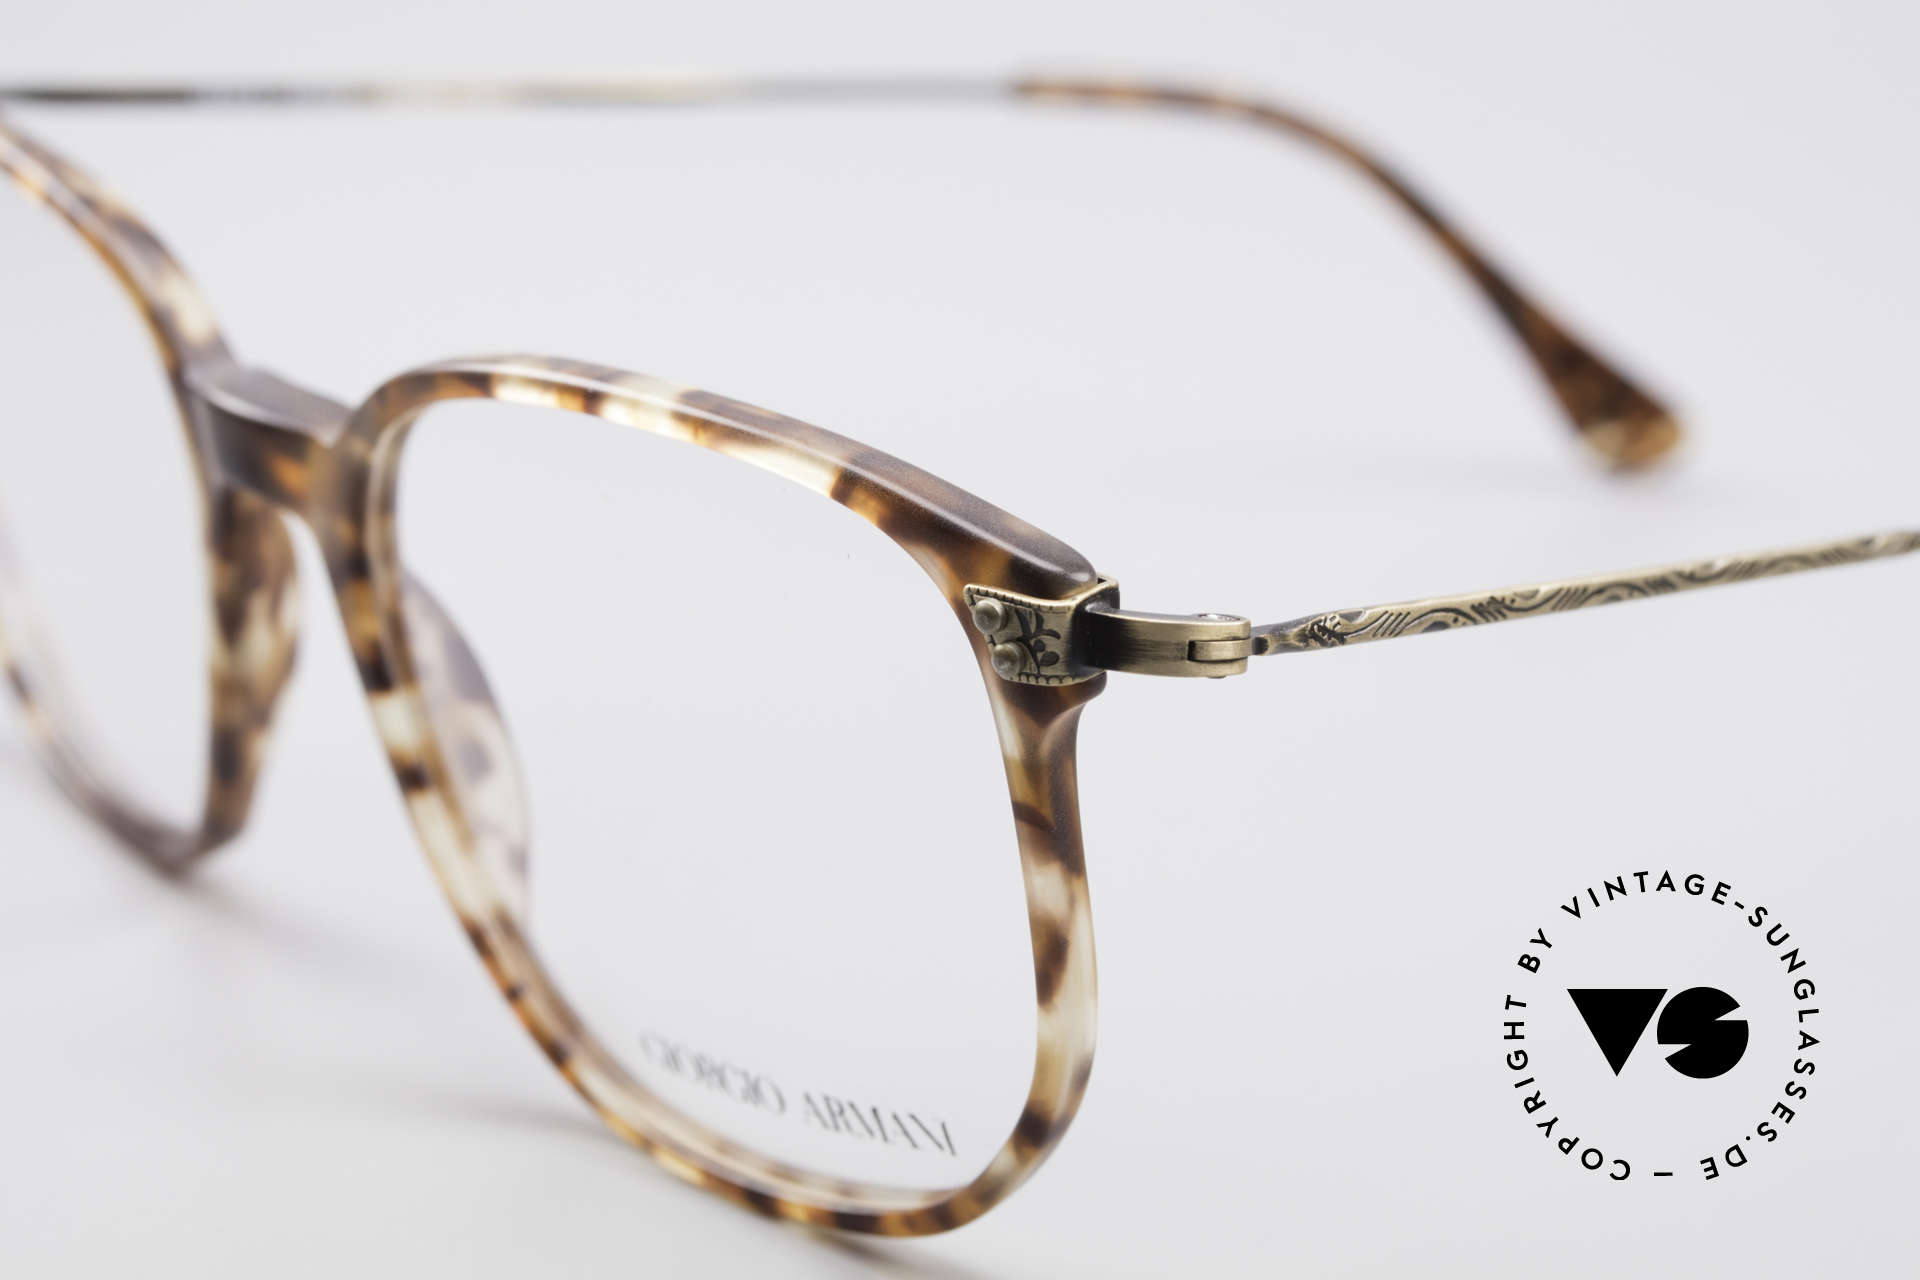 Giorgio Armani 335 True Vintage Eyeglasses, frame is made for lenses of any kind (optical/sun), Made for Men and Women